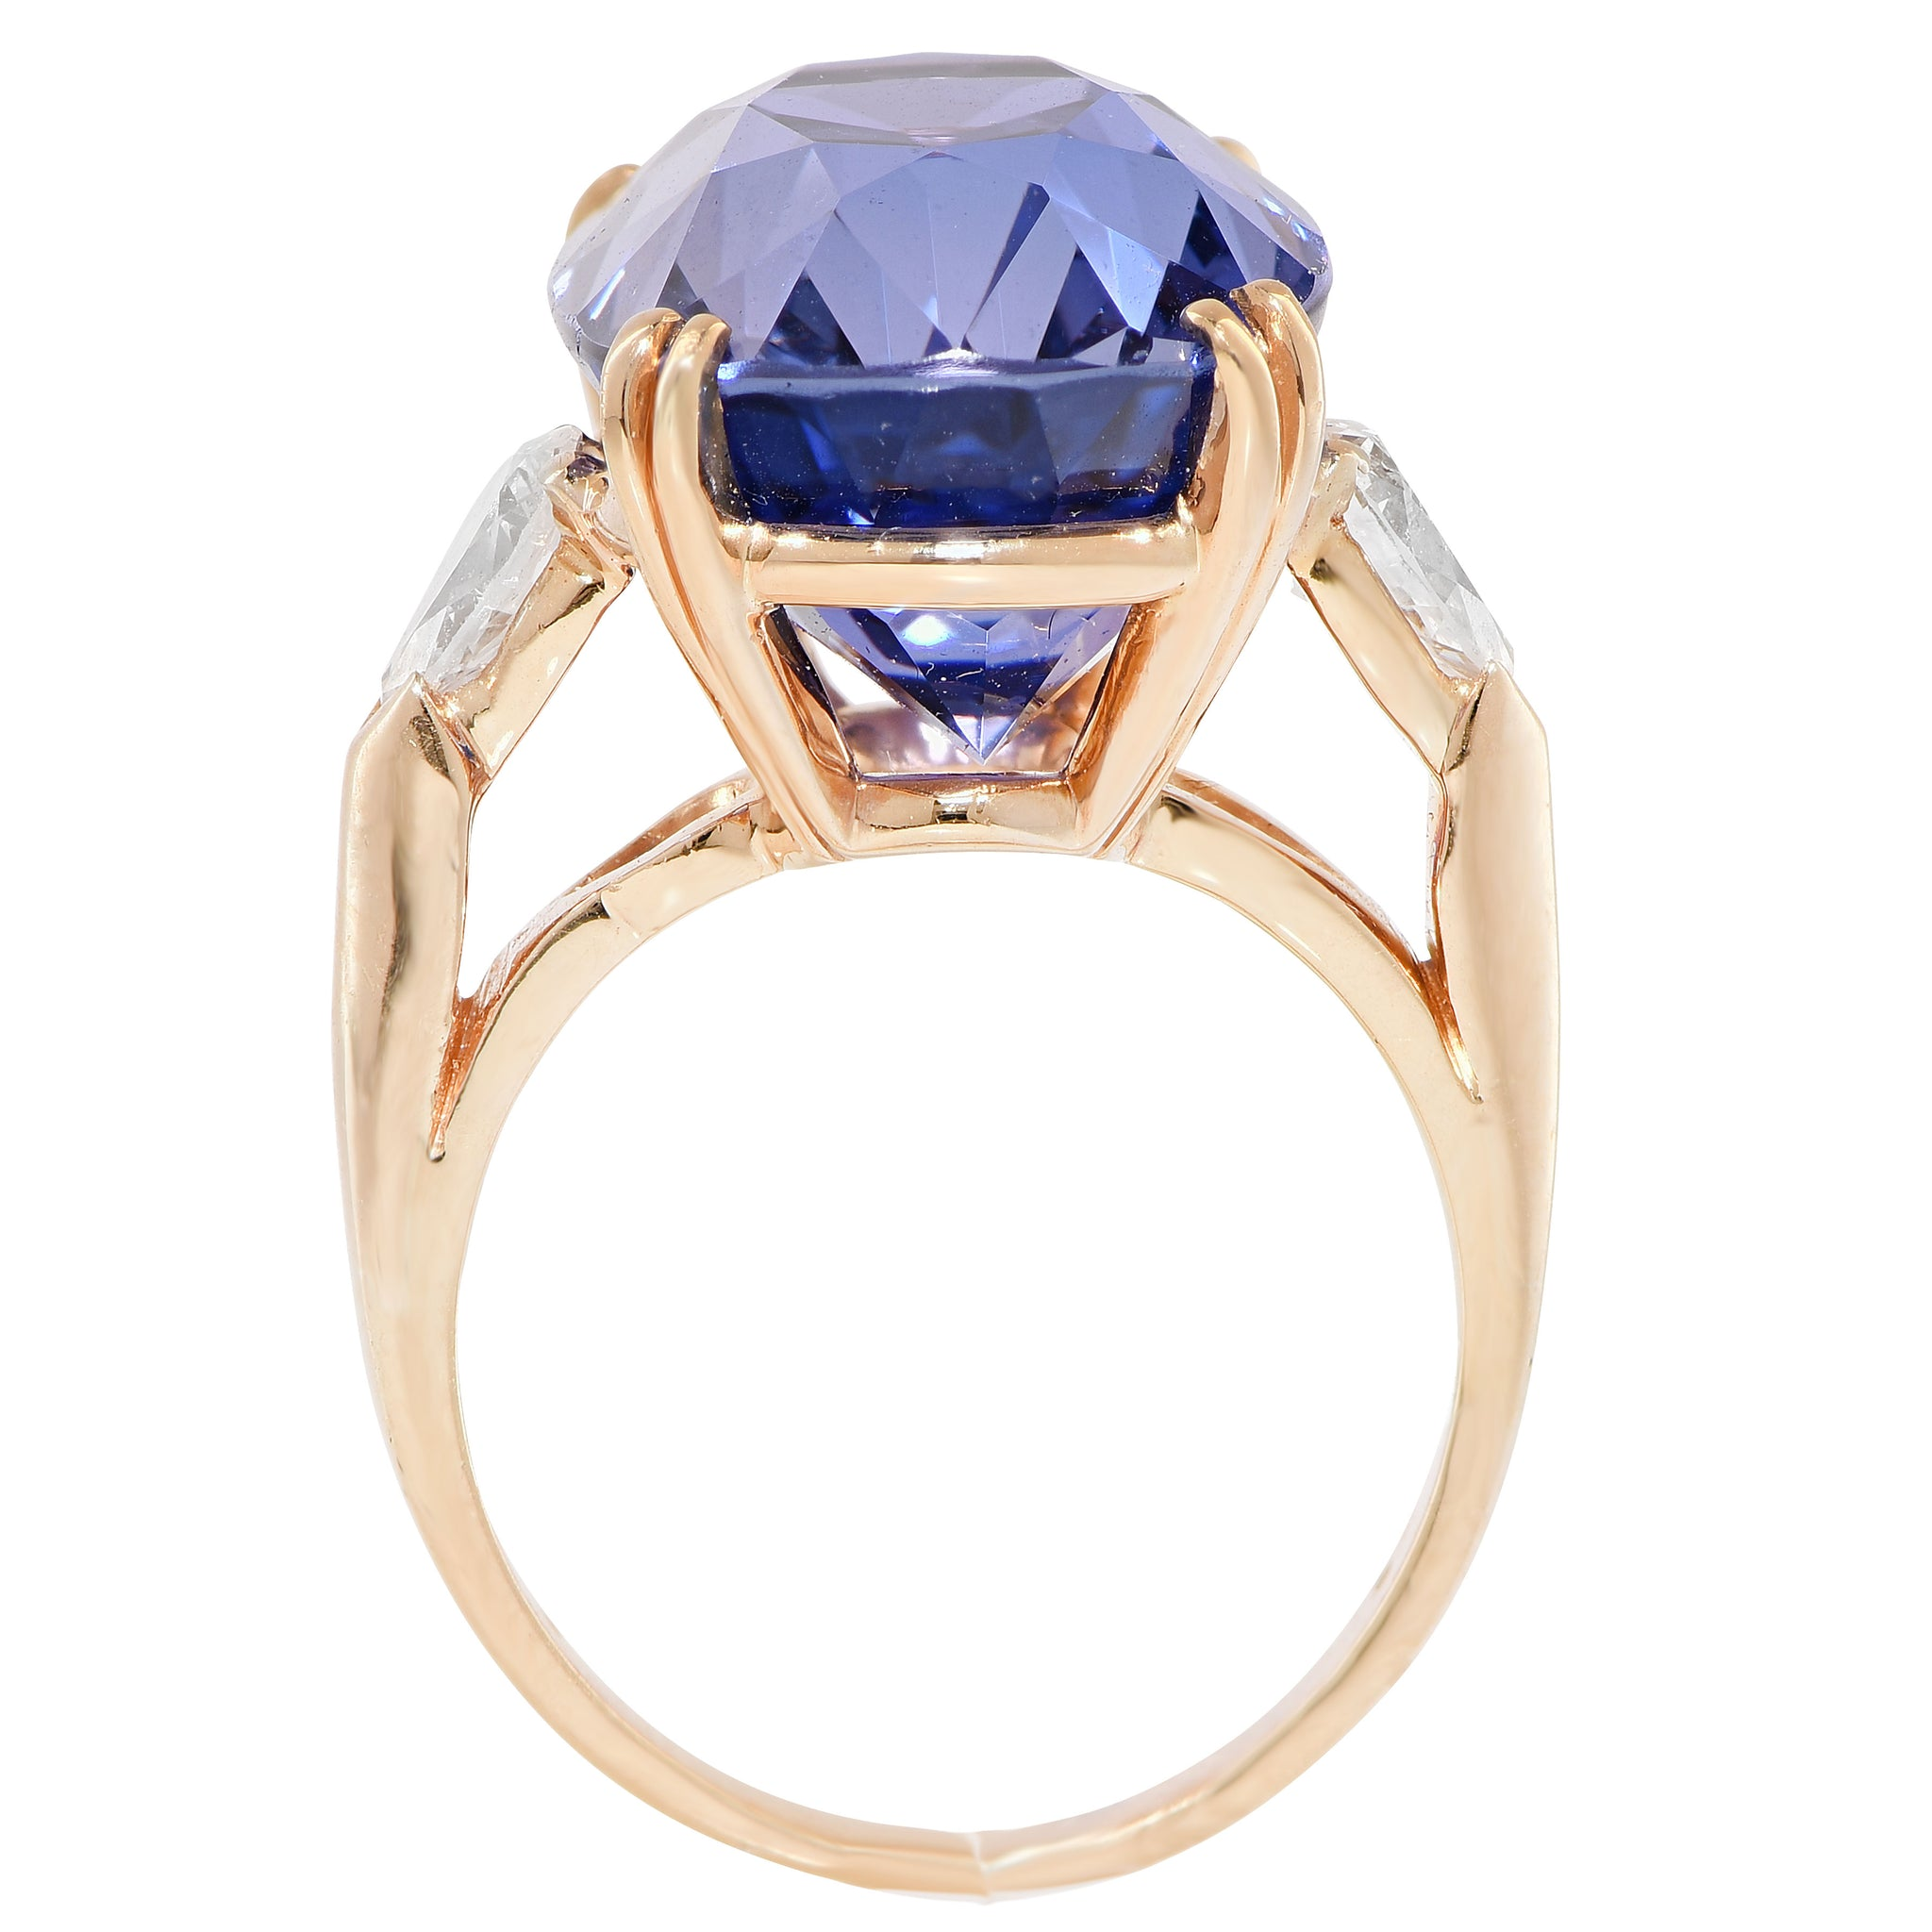 ring product inc collections blue diamond sapphire tags engagement halo color jewelry categories oval jupiter gemstone curley rings gems sku colored